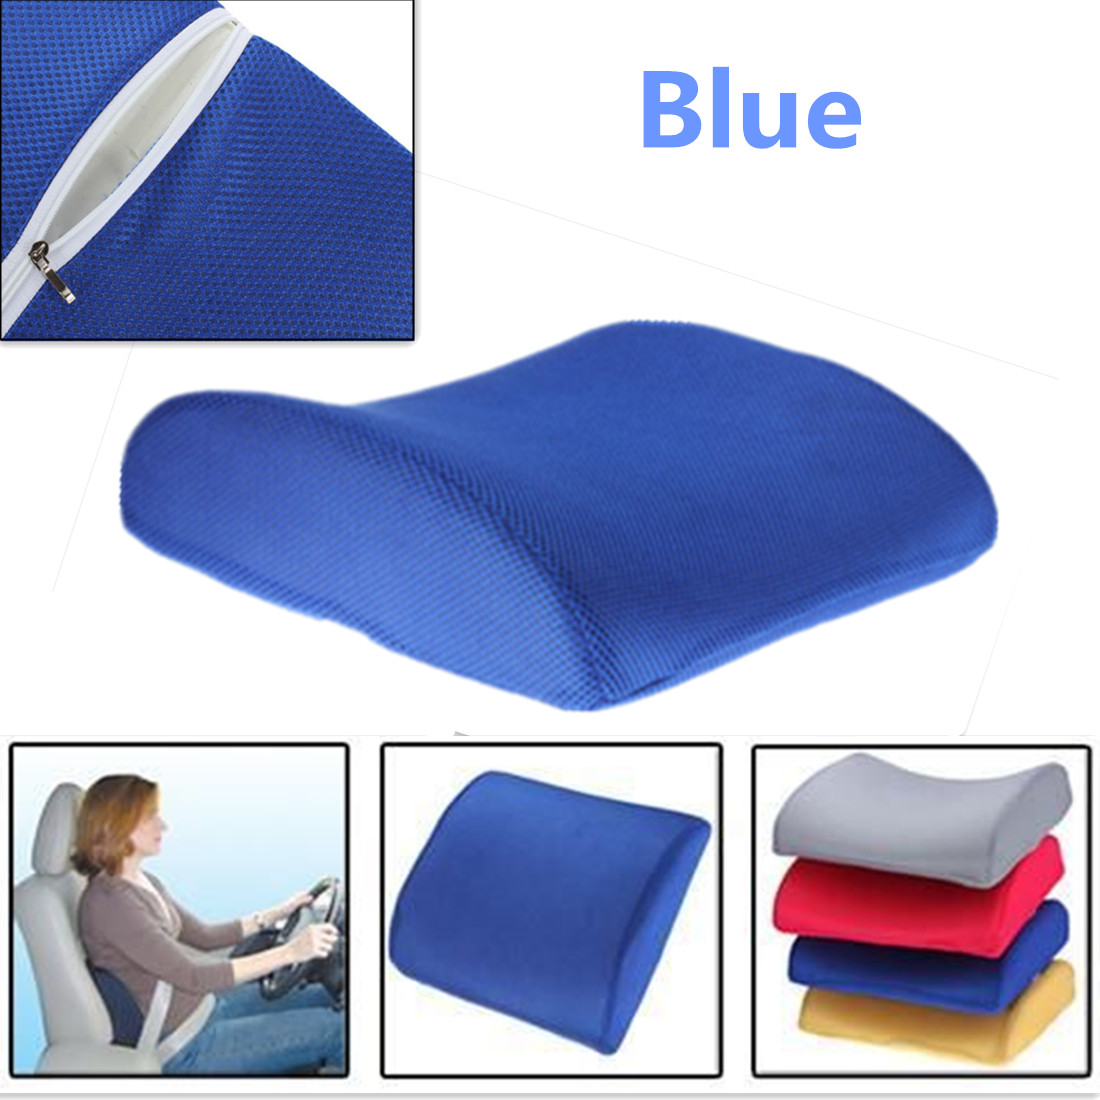 car office home memory foam seat chair lumbar back support cushion pillow new ebay. Black Bedroom Furniture Sets. Home Design Ideas